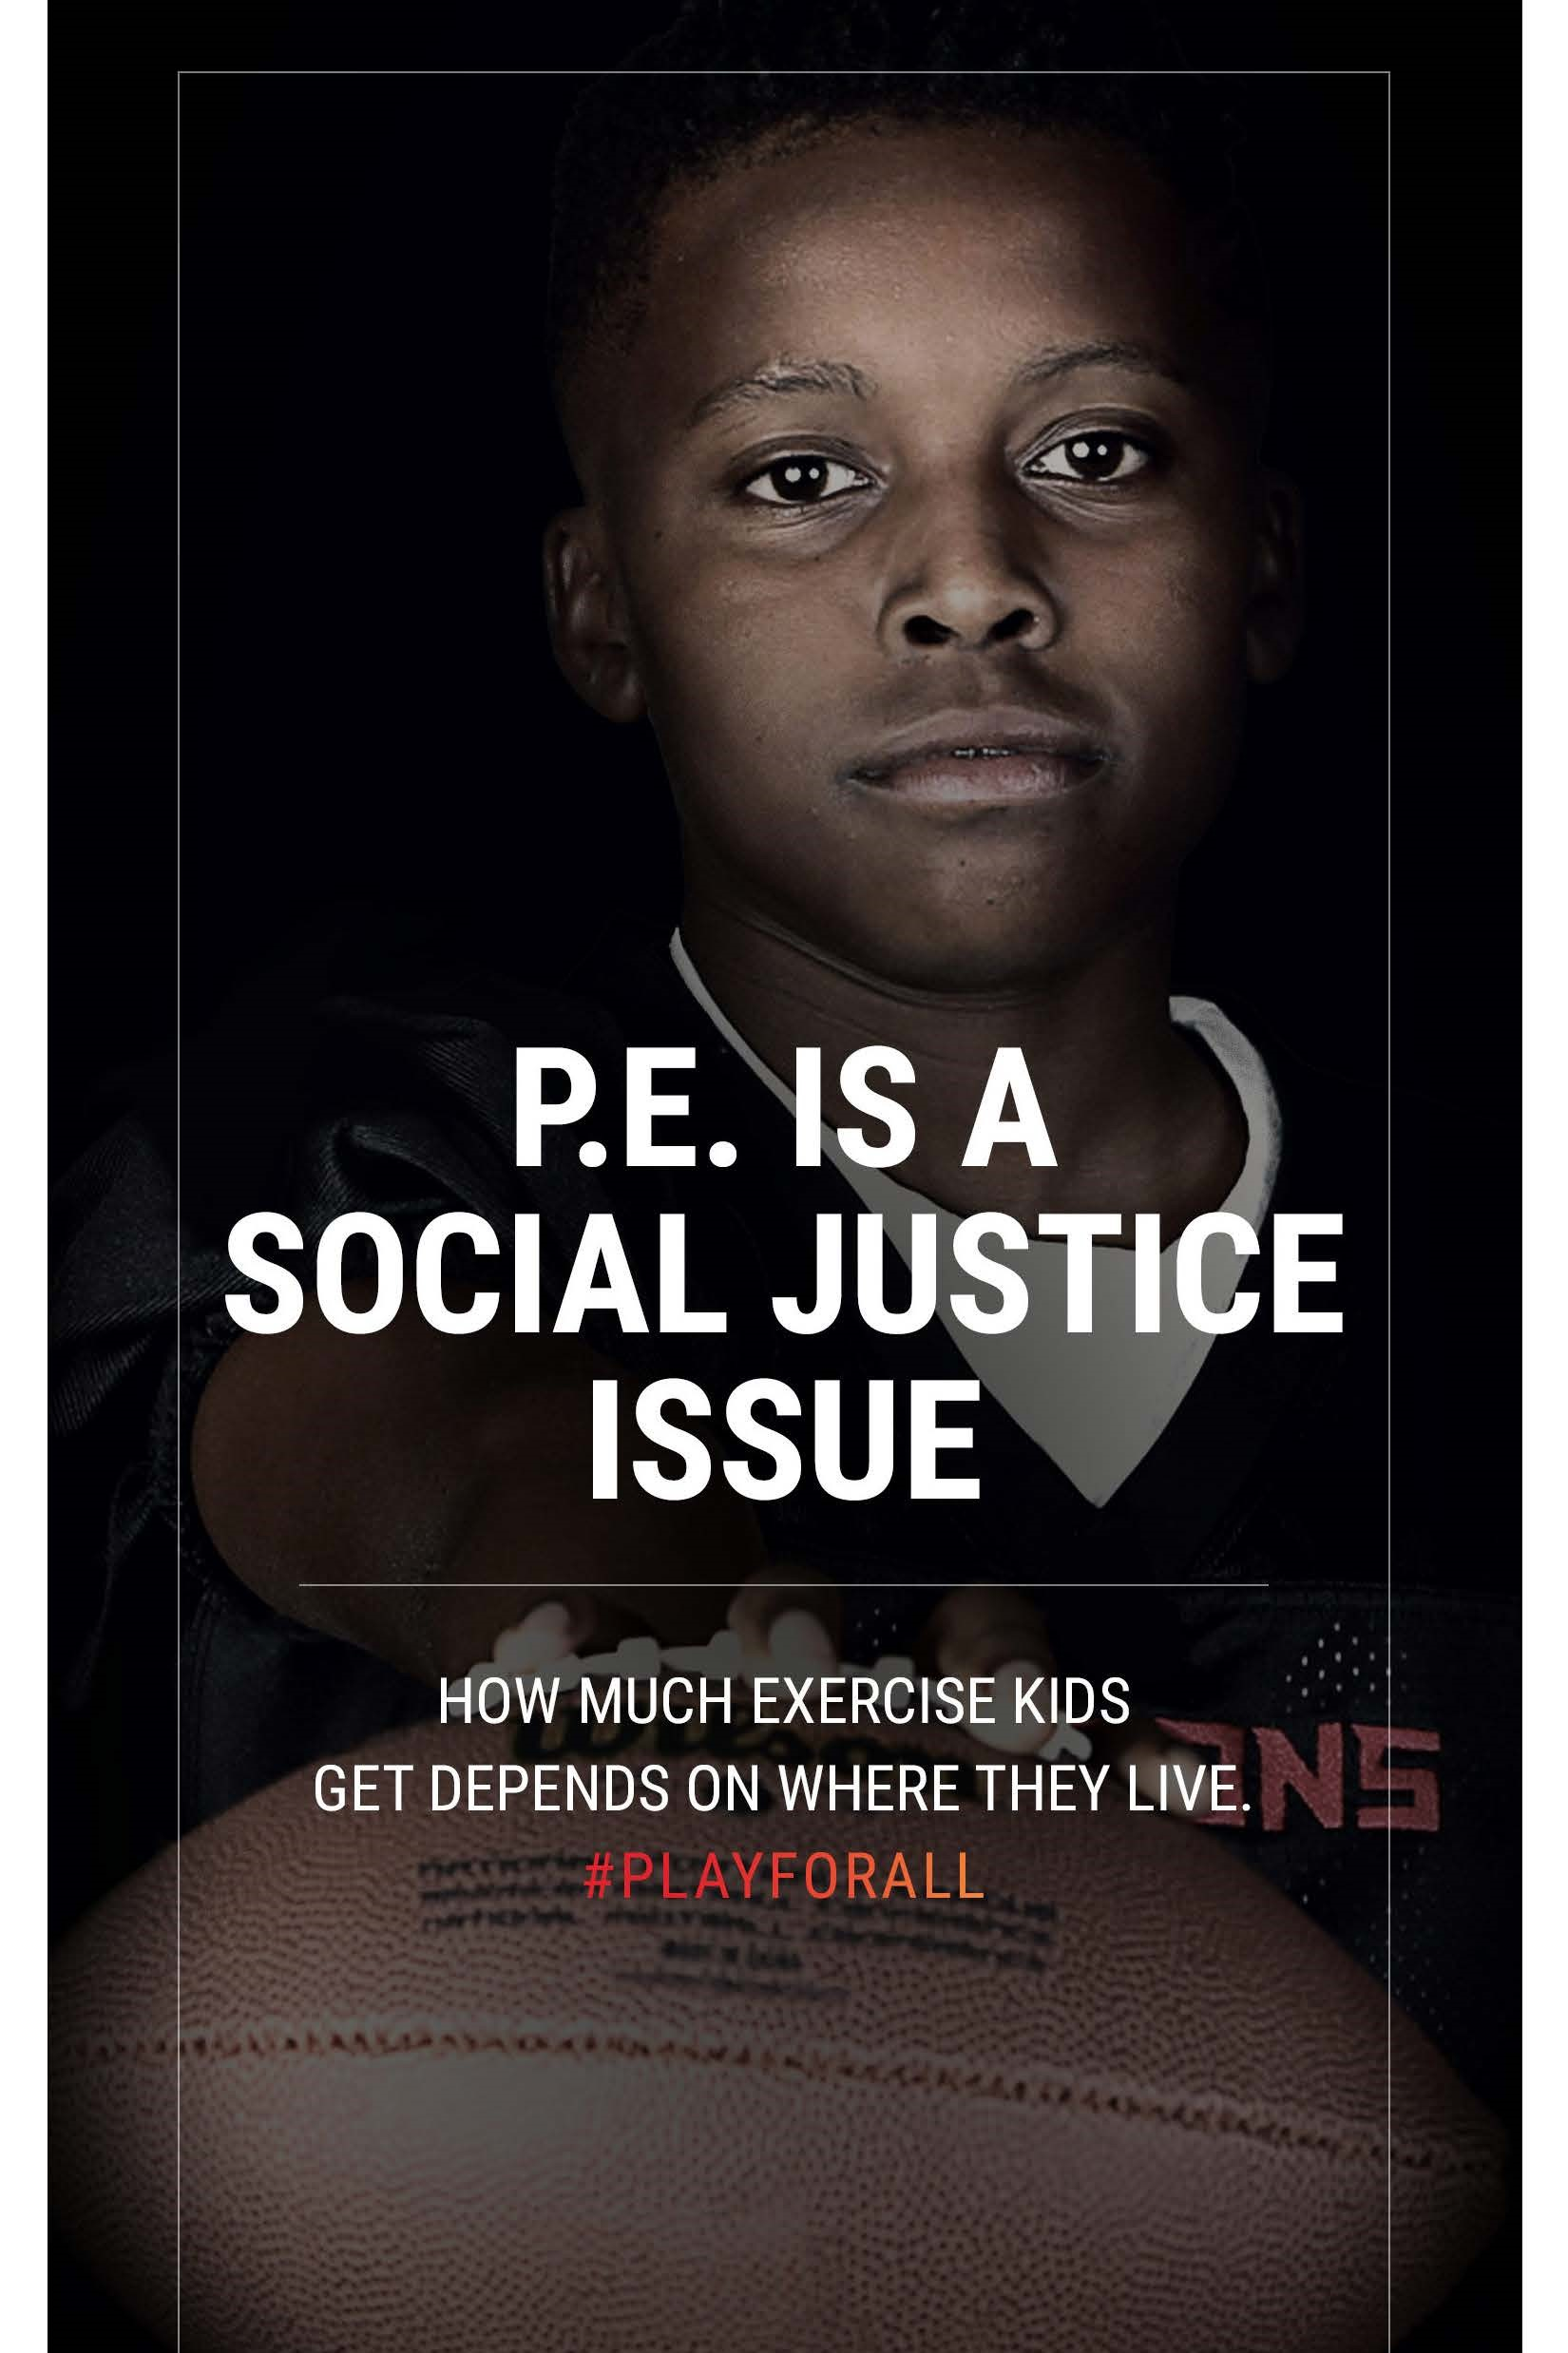 P.E. Is A Social Justice Issue 9-24-17 website